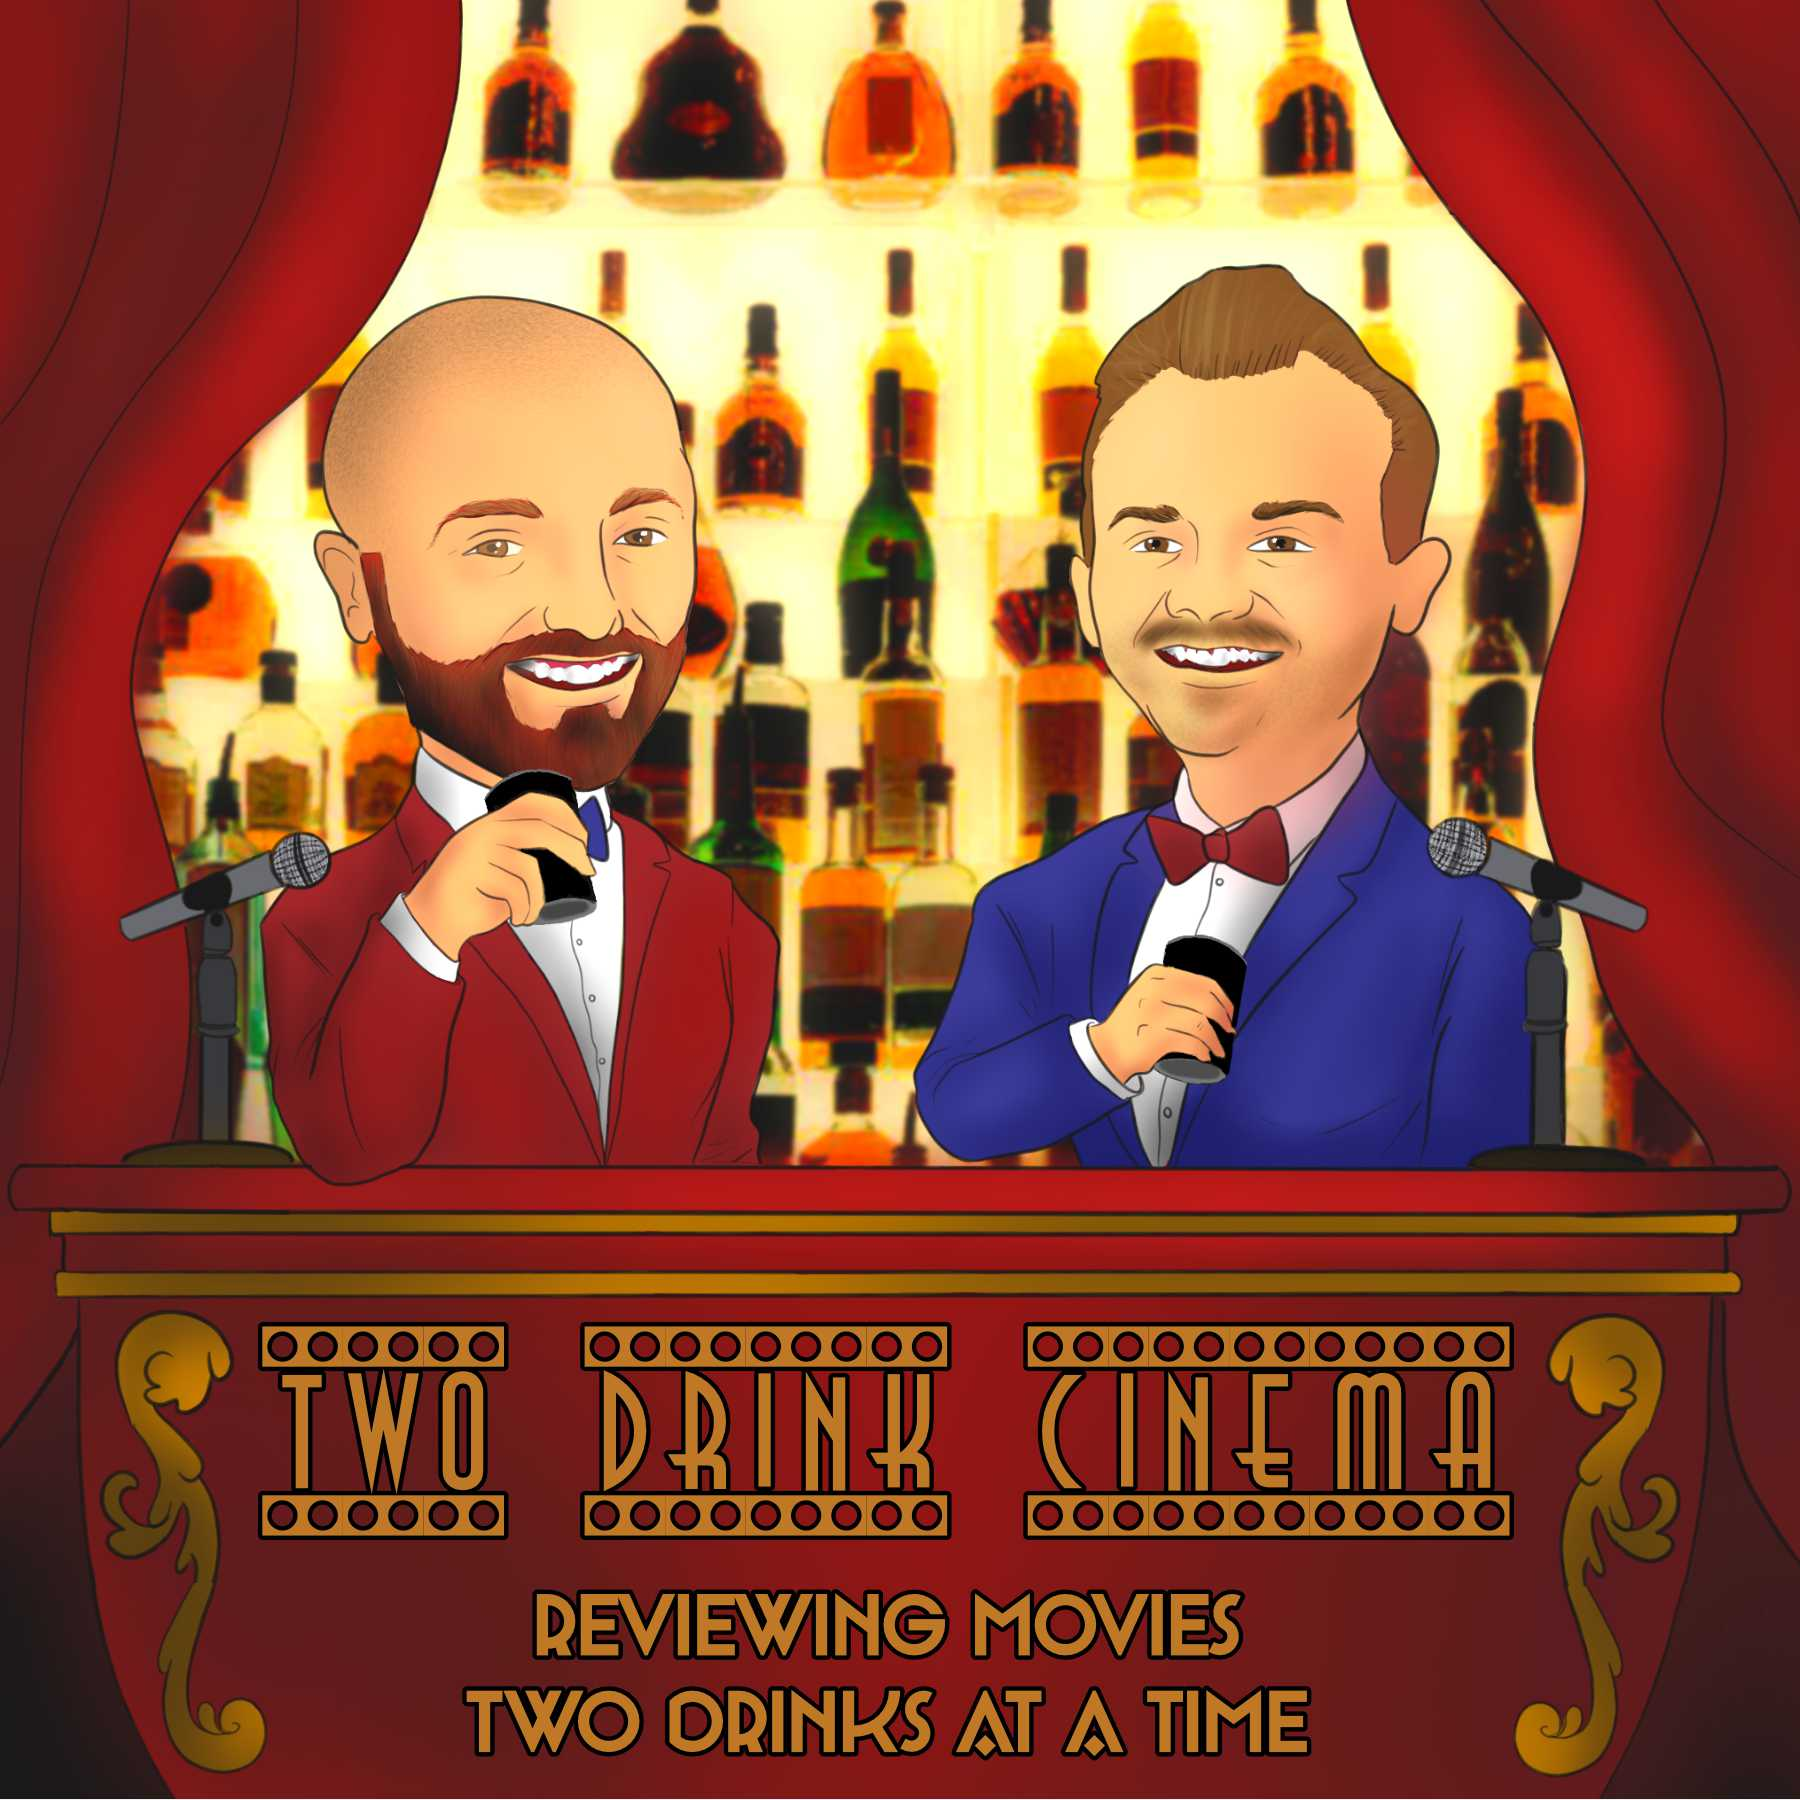 Artwork for podcast Two Drink Cinema